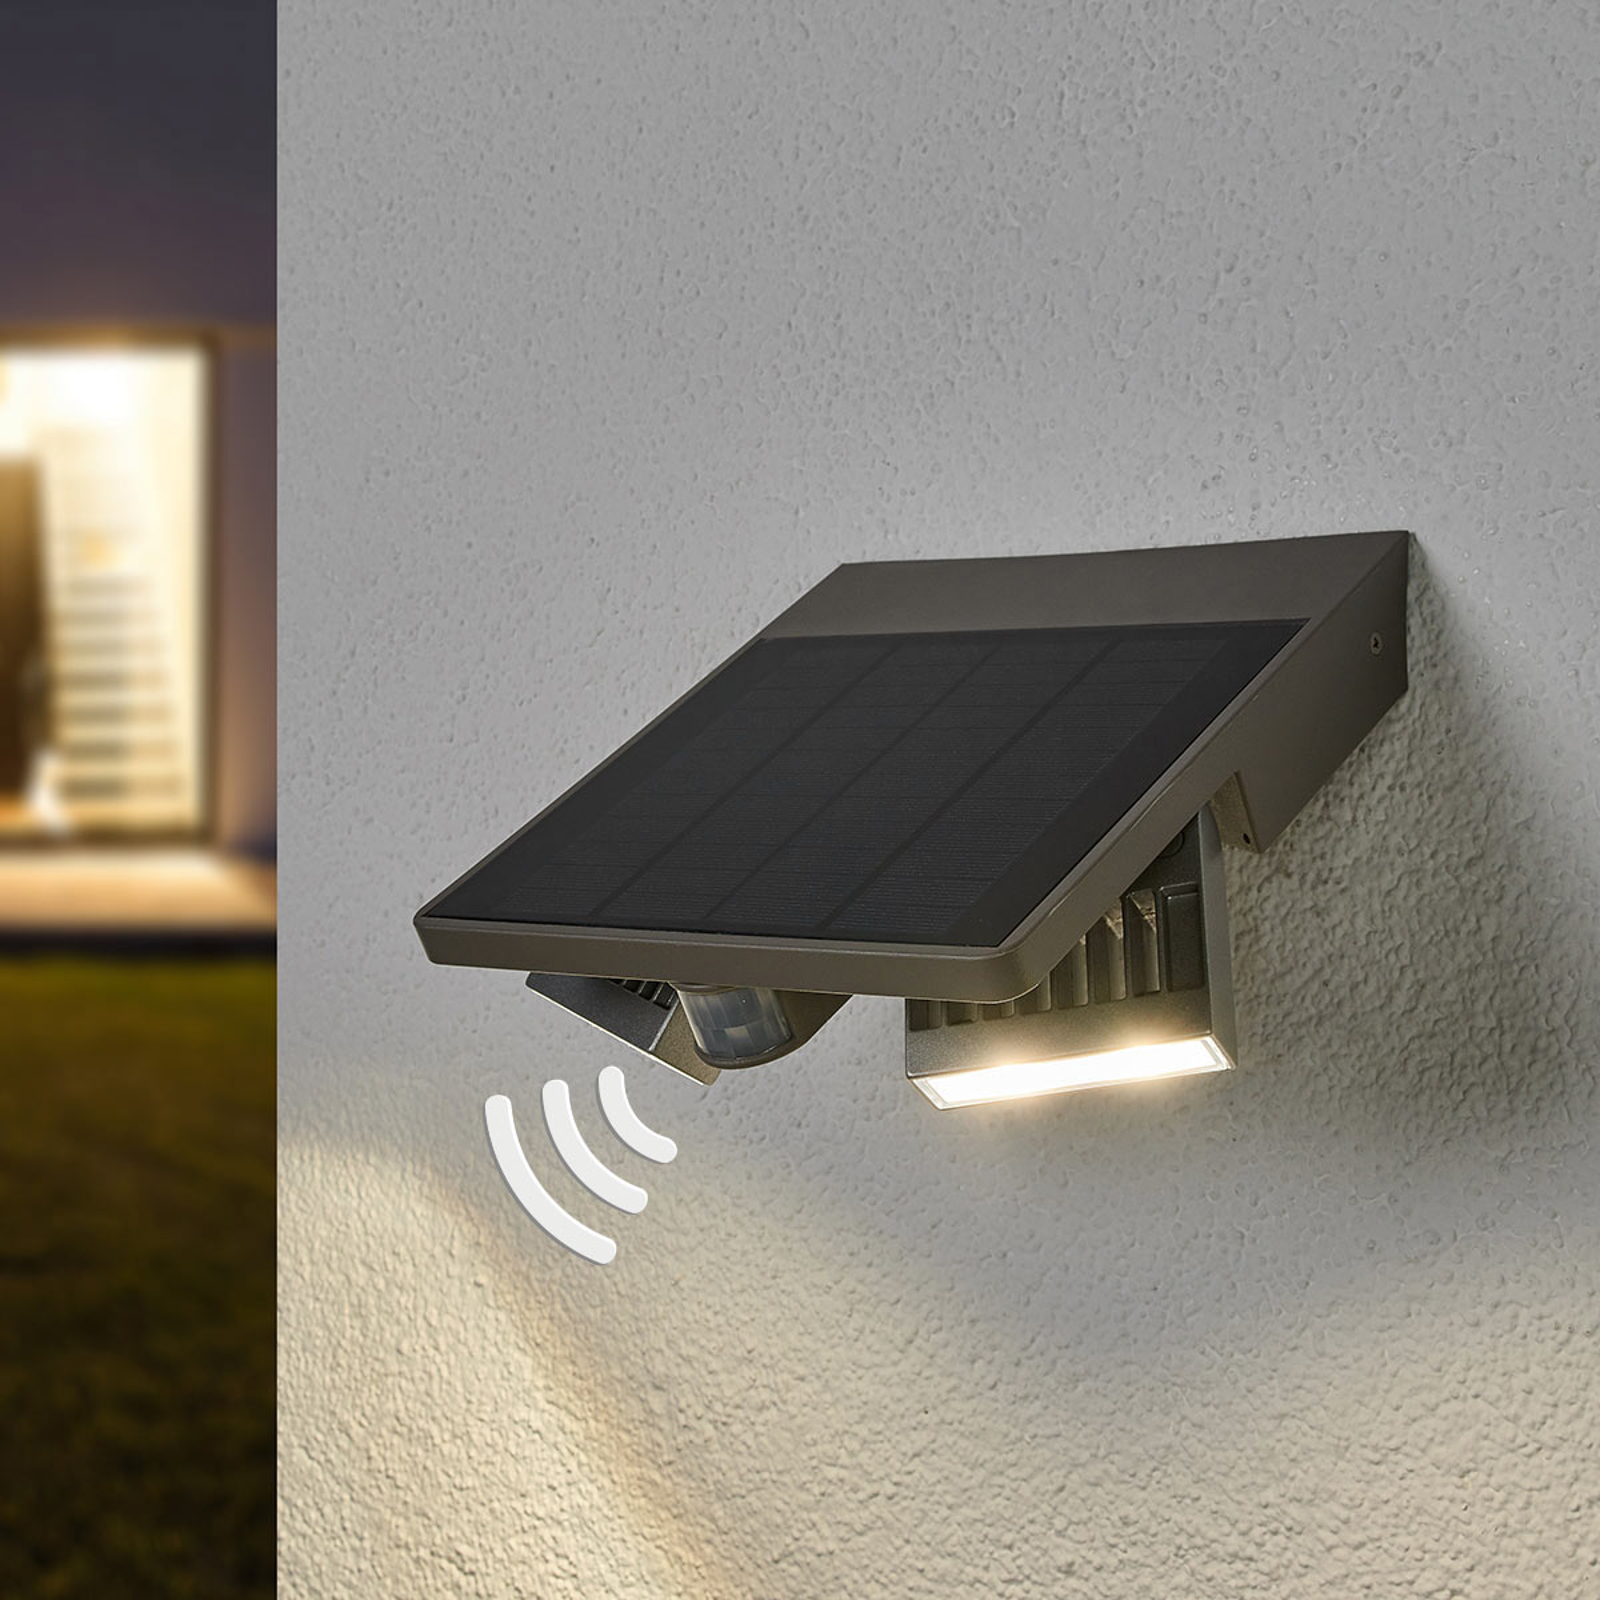 Ghost Solar LED outdoor wall light with MD_3006236_1